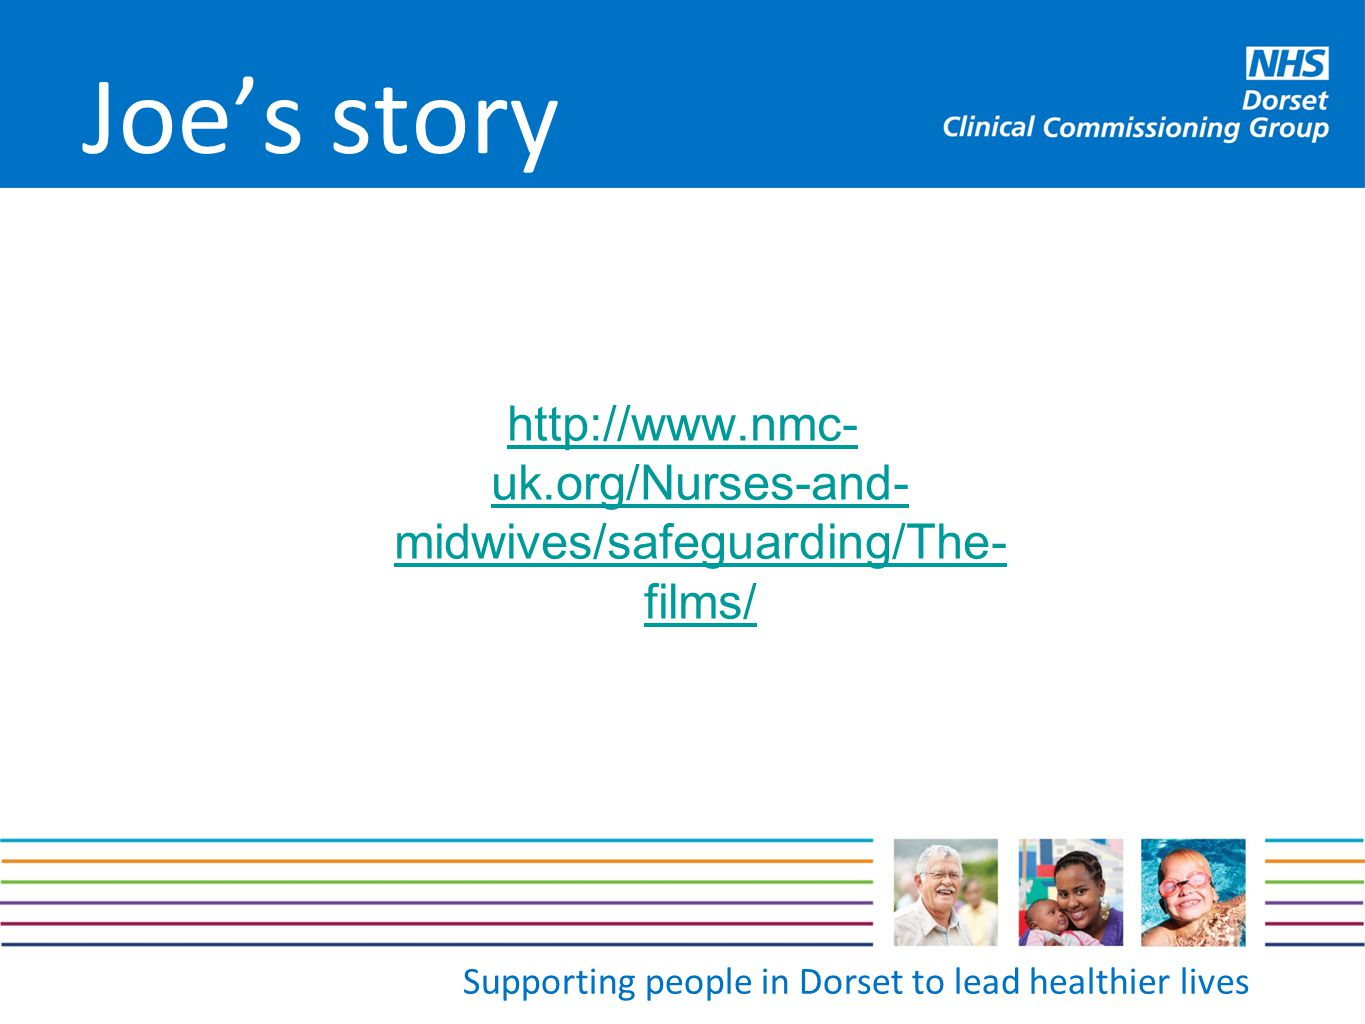 Joe's story http://www.nmc-uk.org/Nurses-and-midwives/safeguarding/The-films/